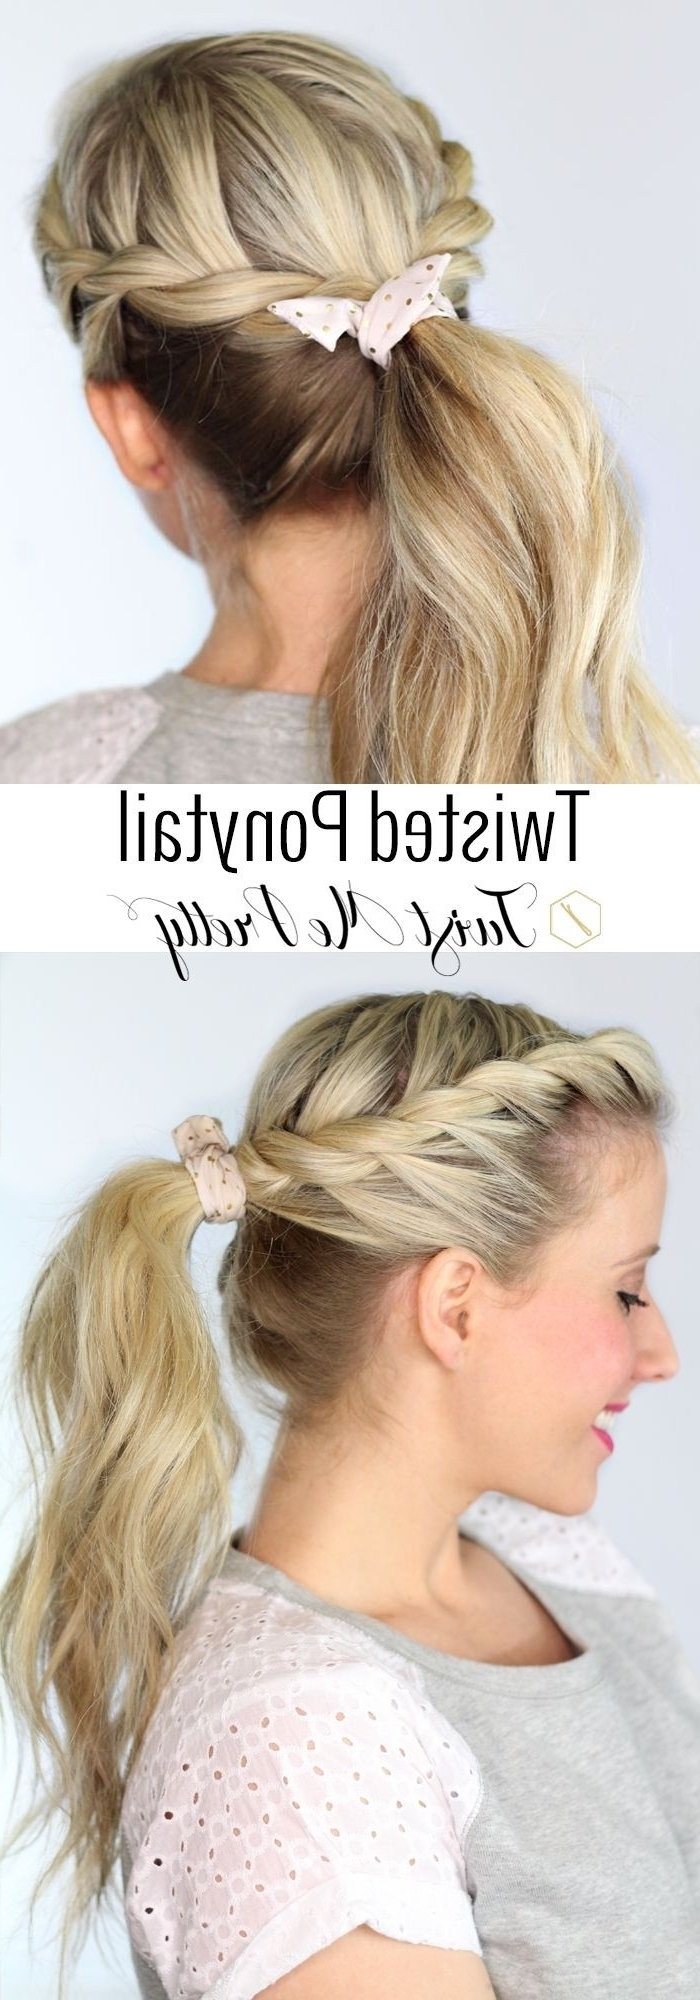 12 Cool Ponytail Hairstyles For Women 2015 – Pretty Designs For Famous Messy Pony Hairstyles For Medium Hair With Bangs (View 1 of 20)